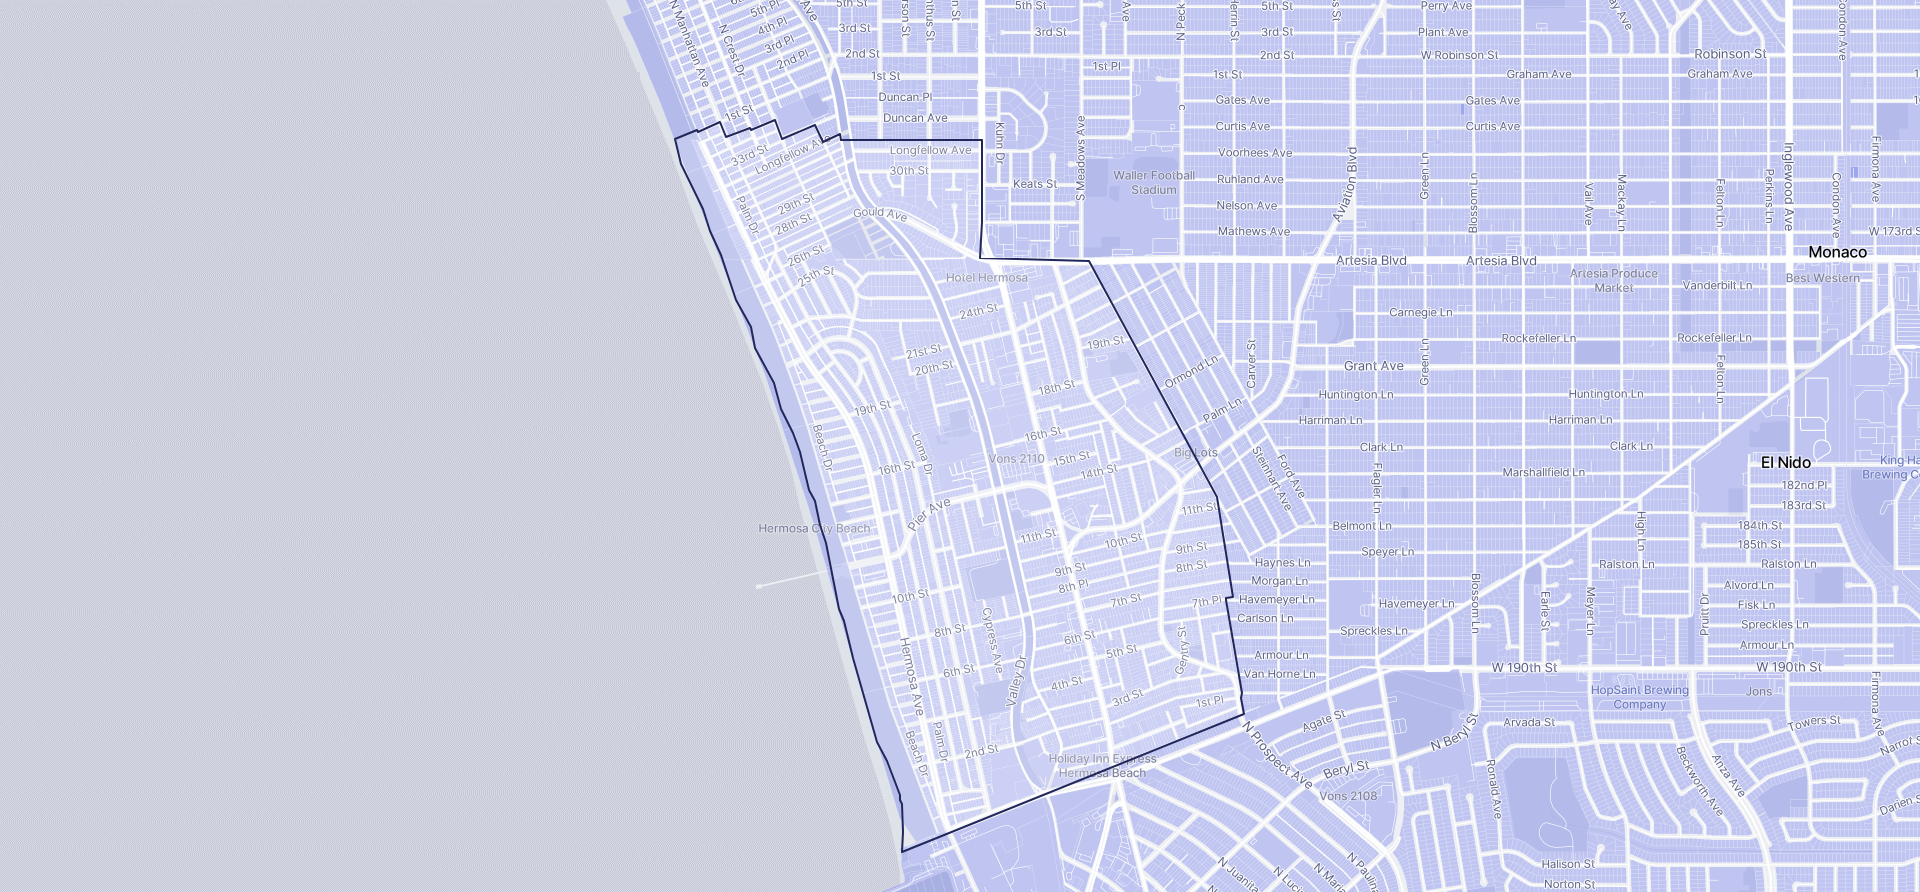 Image of Hermosa Beach boundaries on a map.